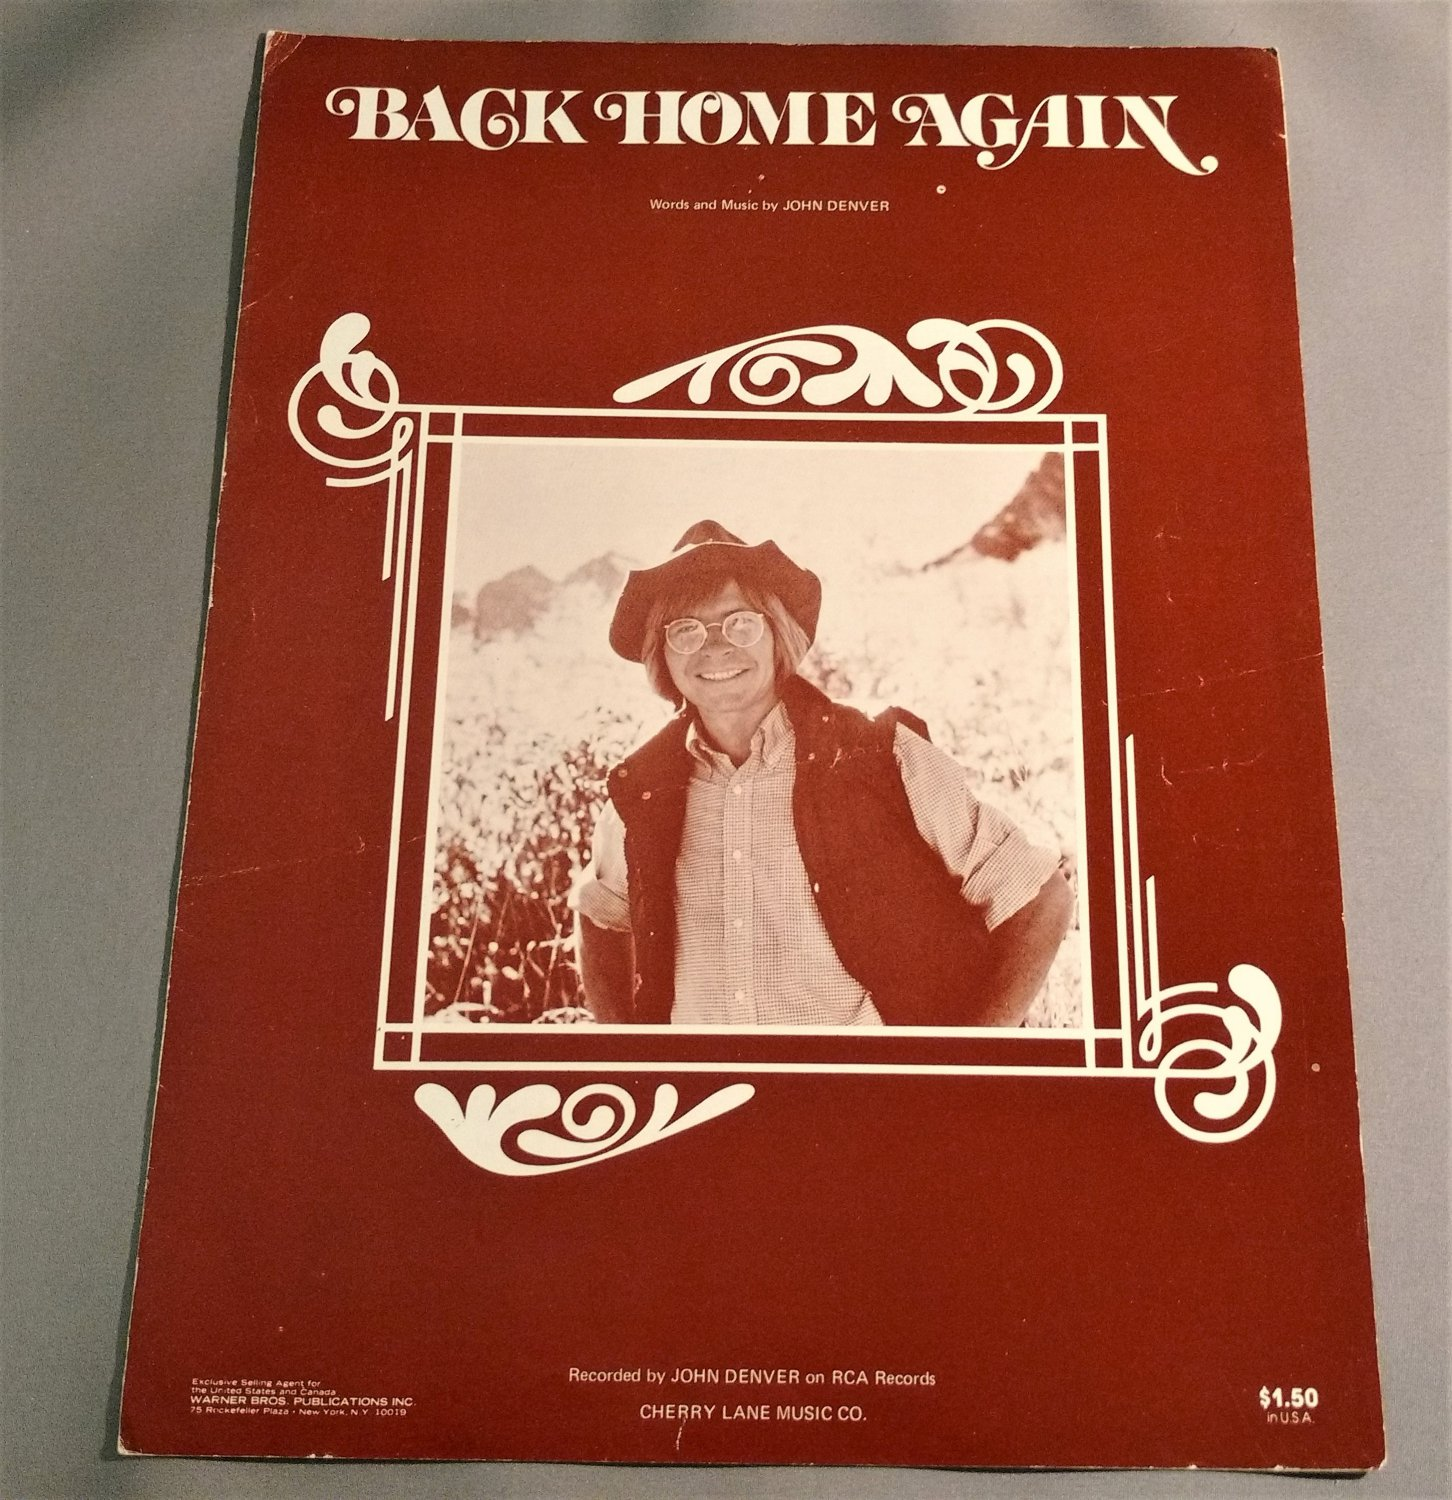 BACK HOME AGAIN Piano Vocal Guitar Sheet Music JOHN DENVER 1974 Cover Photo